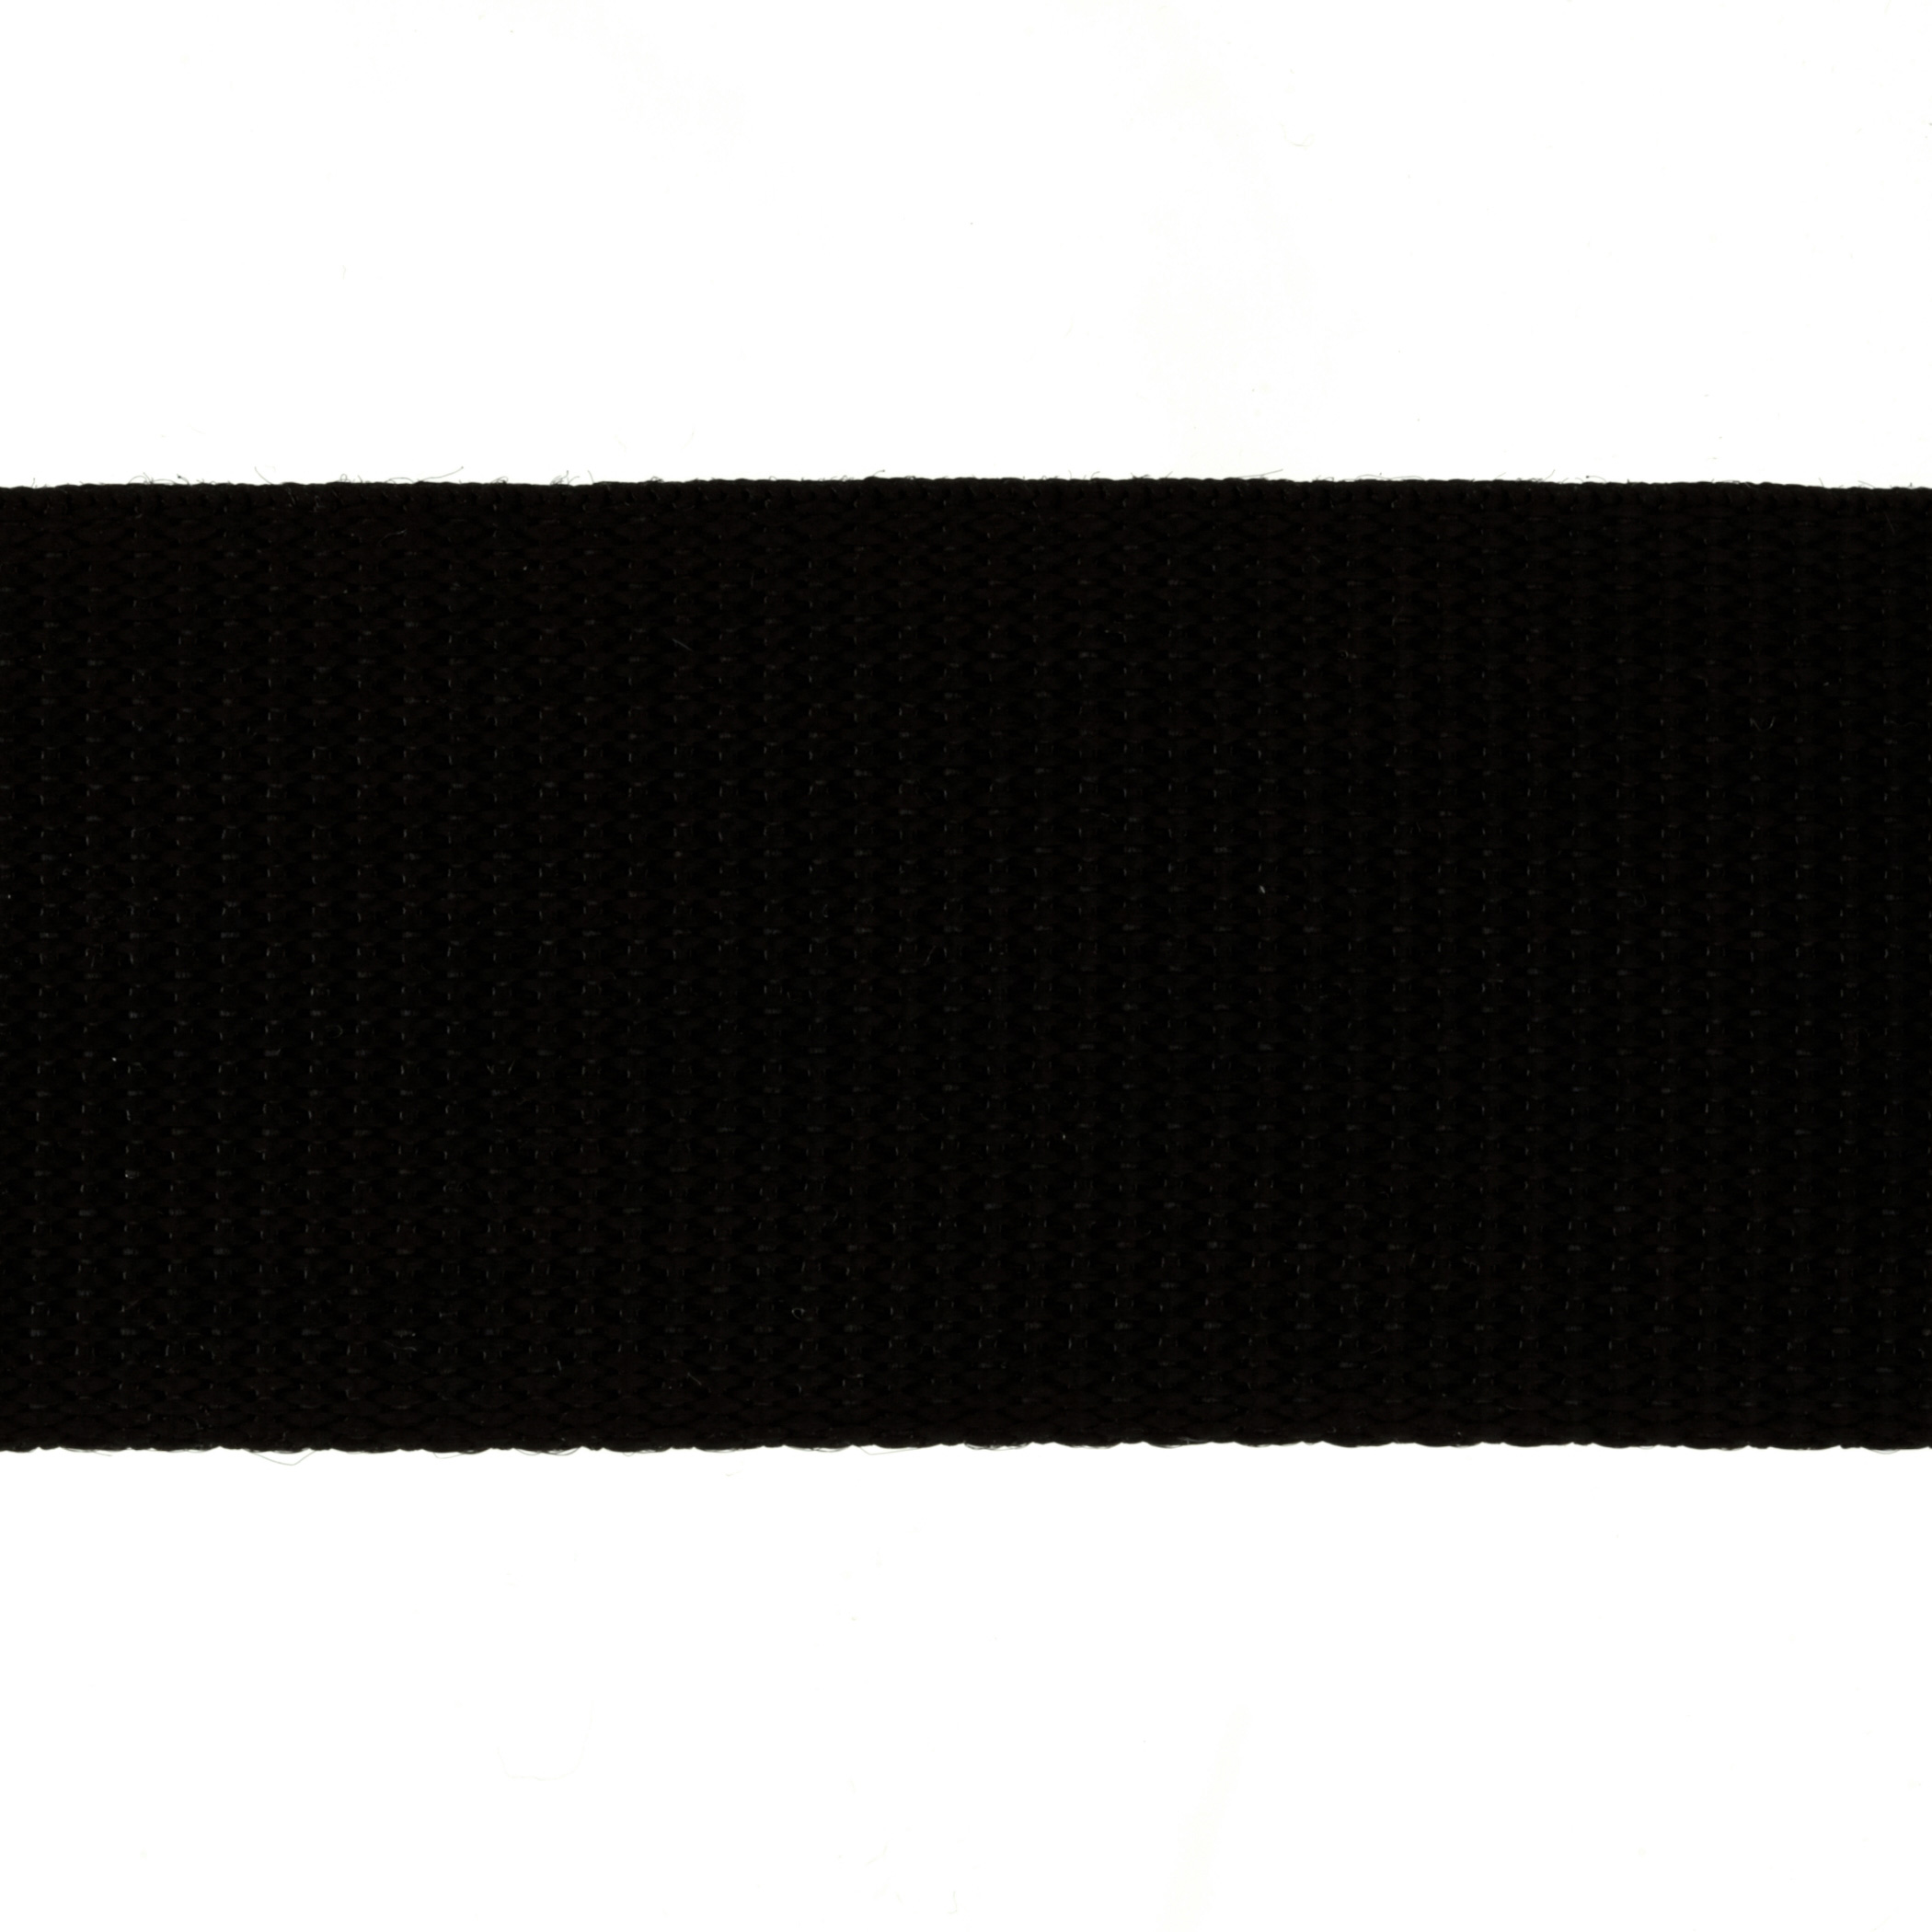 2'' Polypropylene Webbing Black - By the Yard